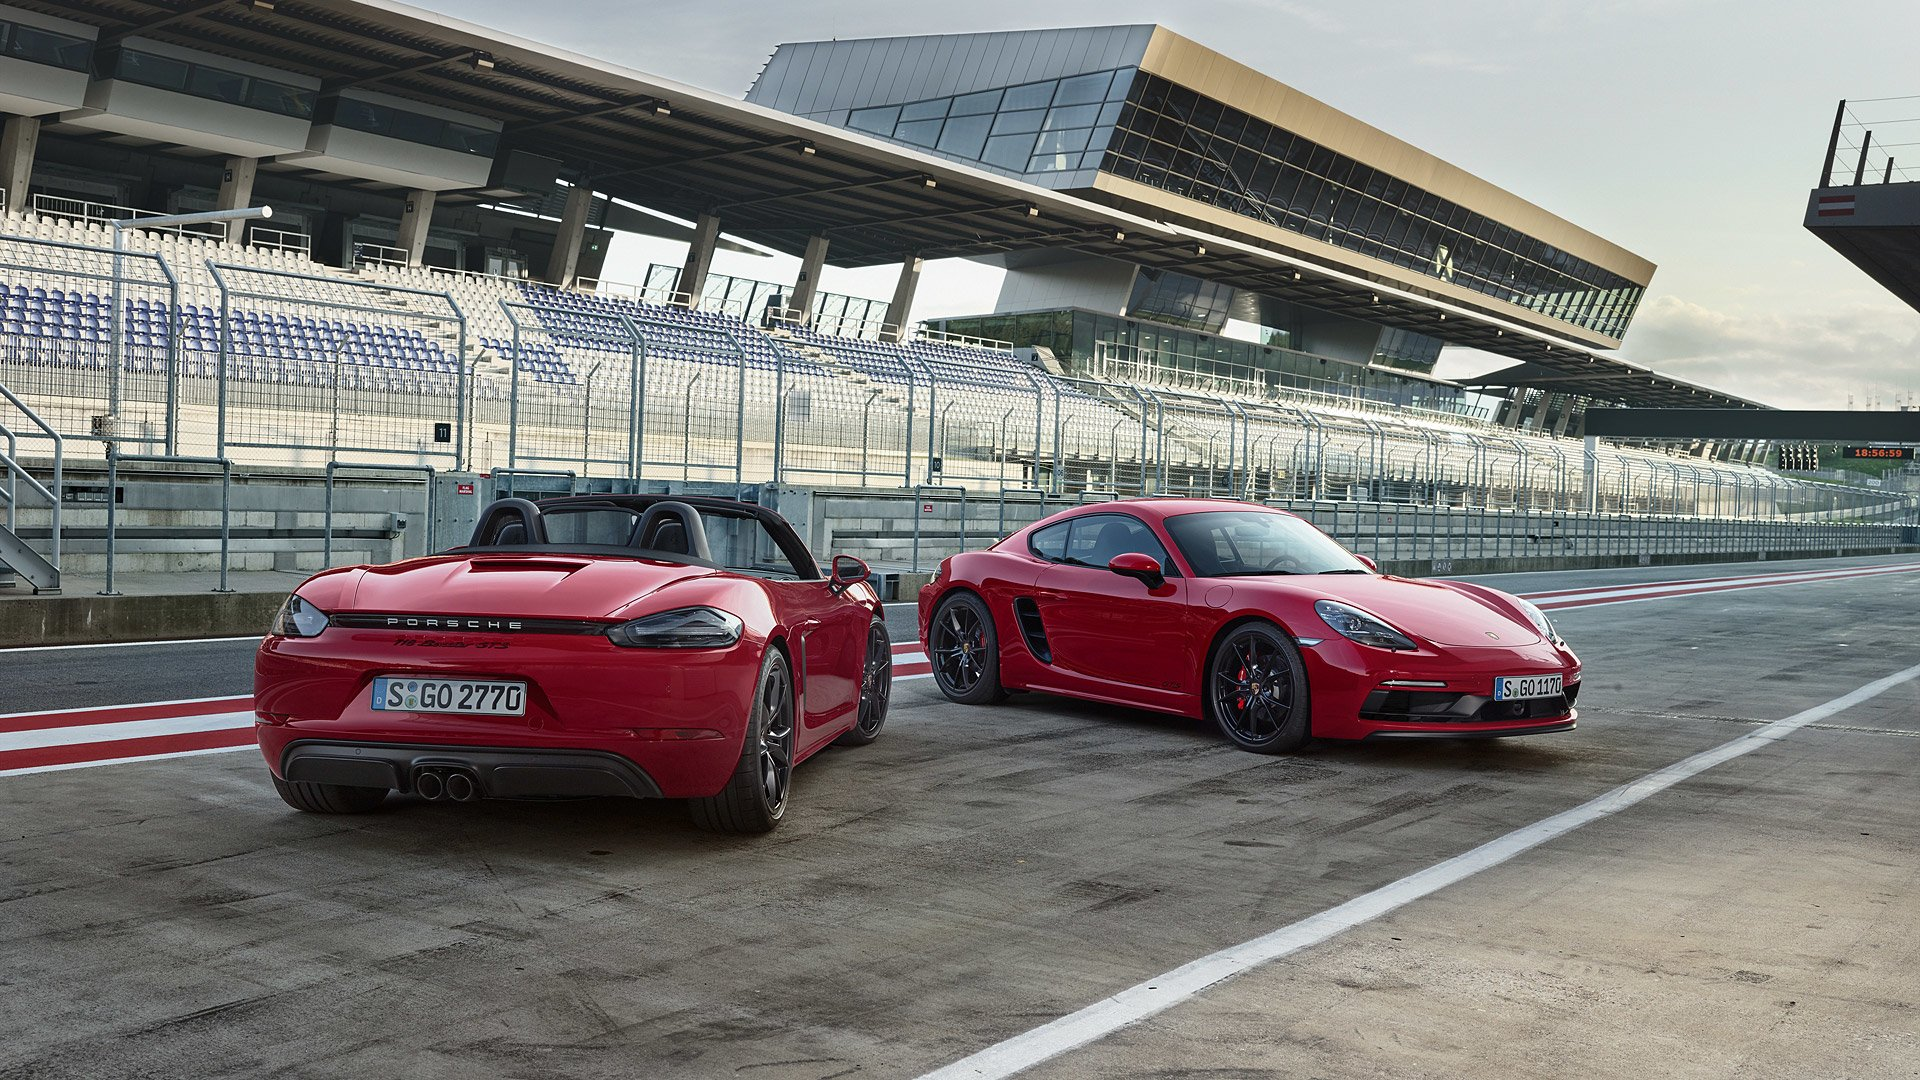 2018 Porsche 718 Cayman Gts And 718 Boxster Gts Hd Wallpaper Background Image 1920x1080 Id 880933 Wallpaper Abyss